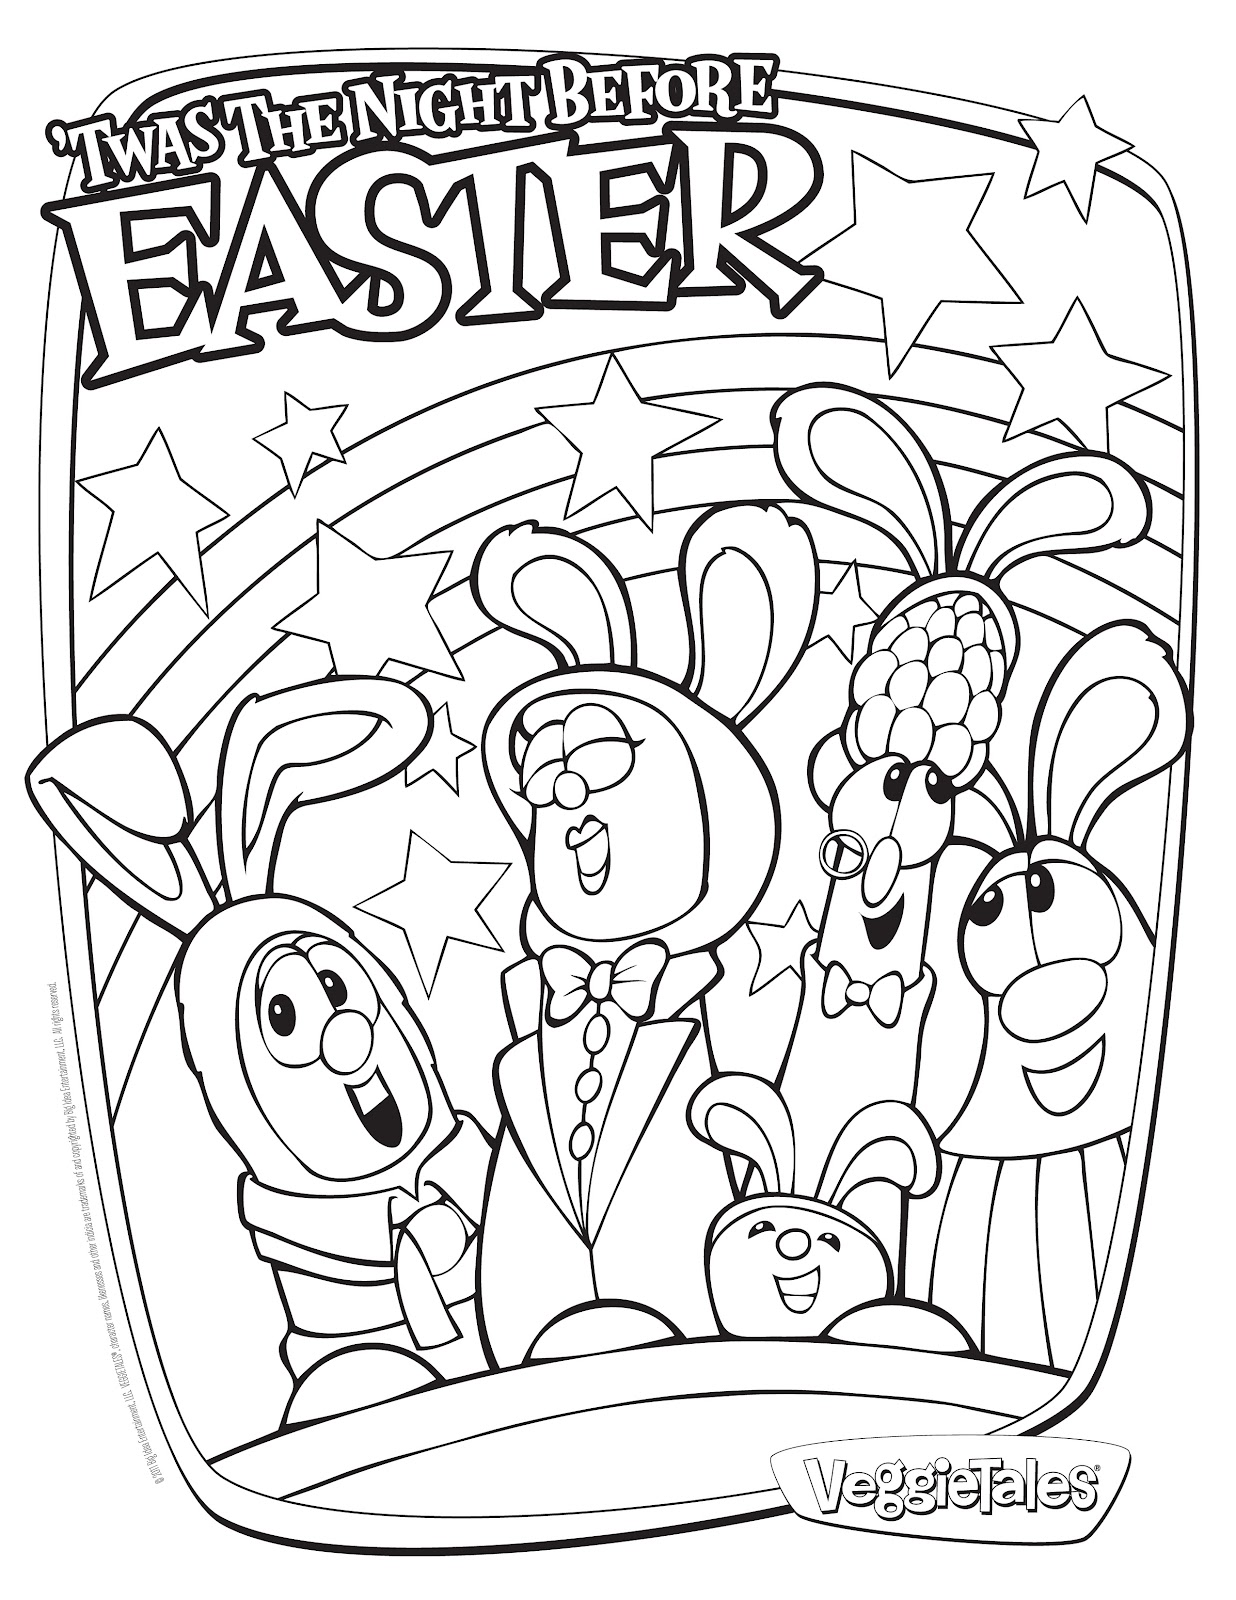 Coloring Pages Religious : Free easter christian coloring pages